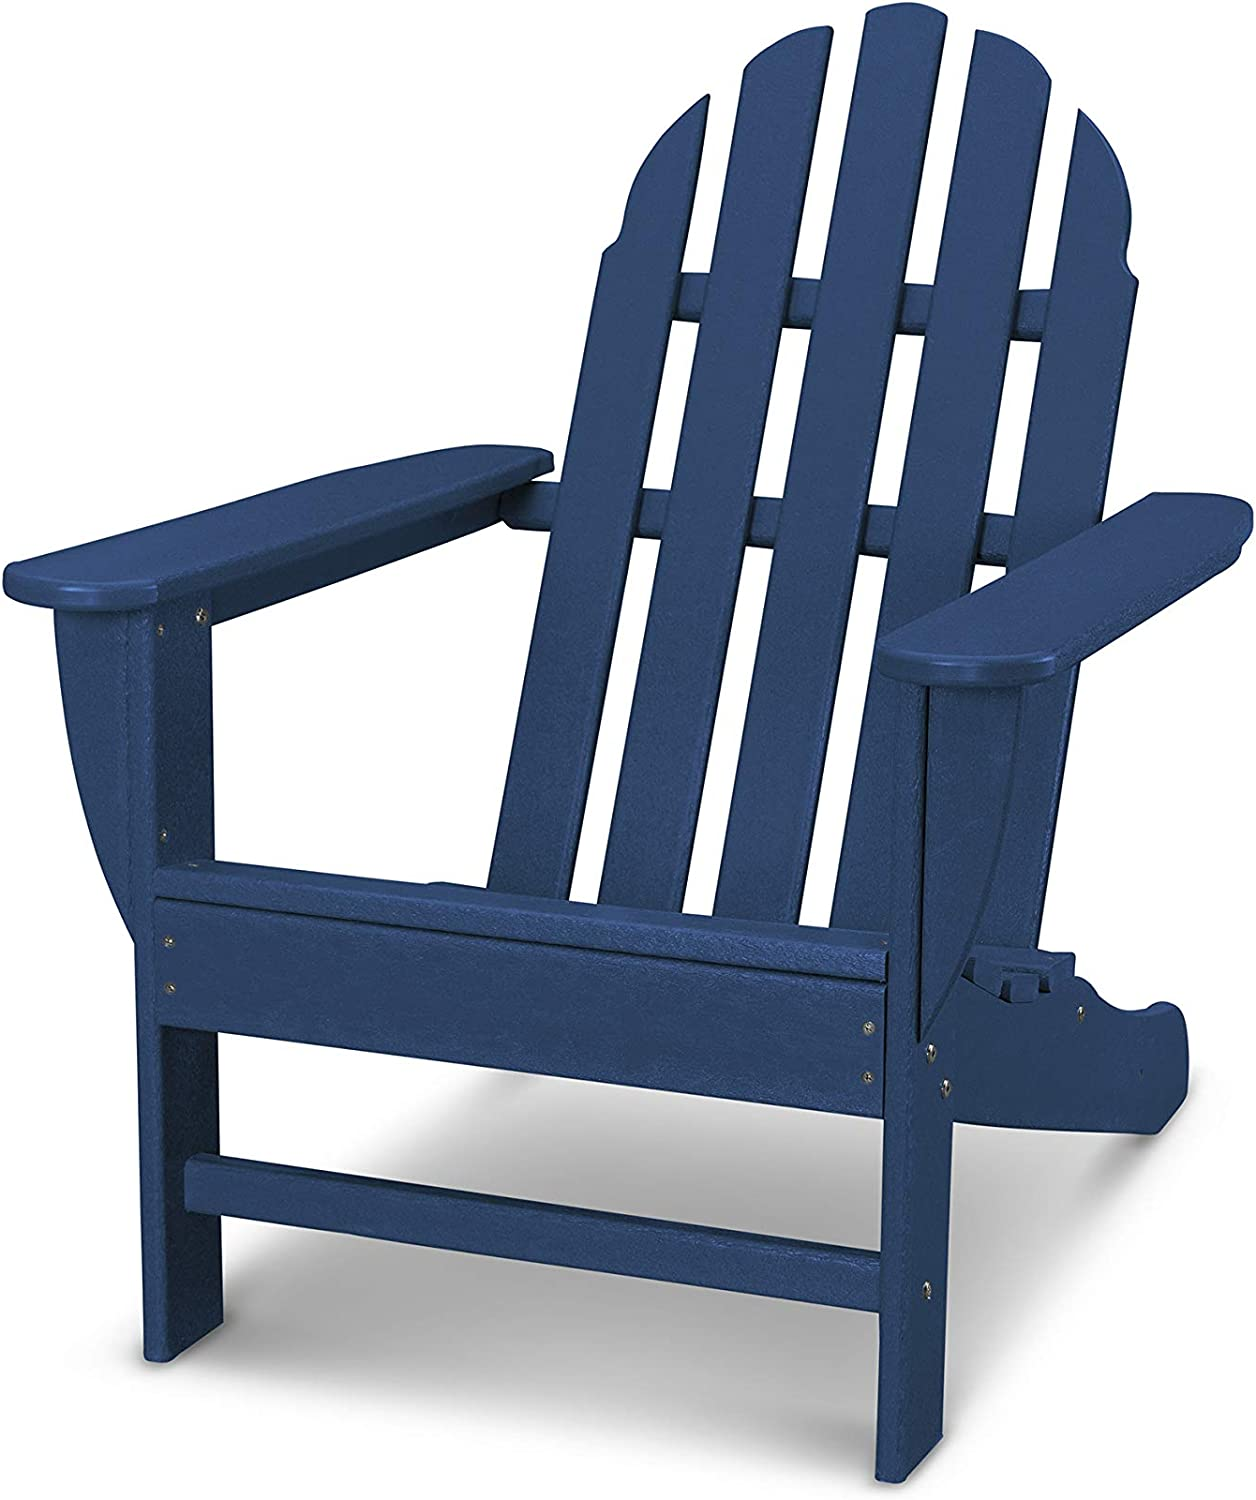 POLYWOOD AD4030NV Classic Adirondack Chair, Navy